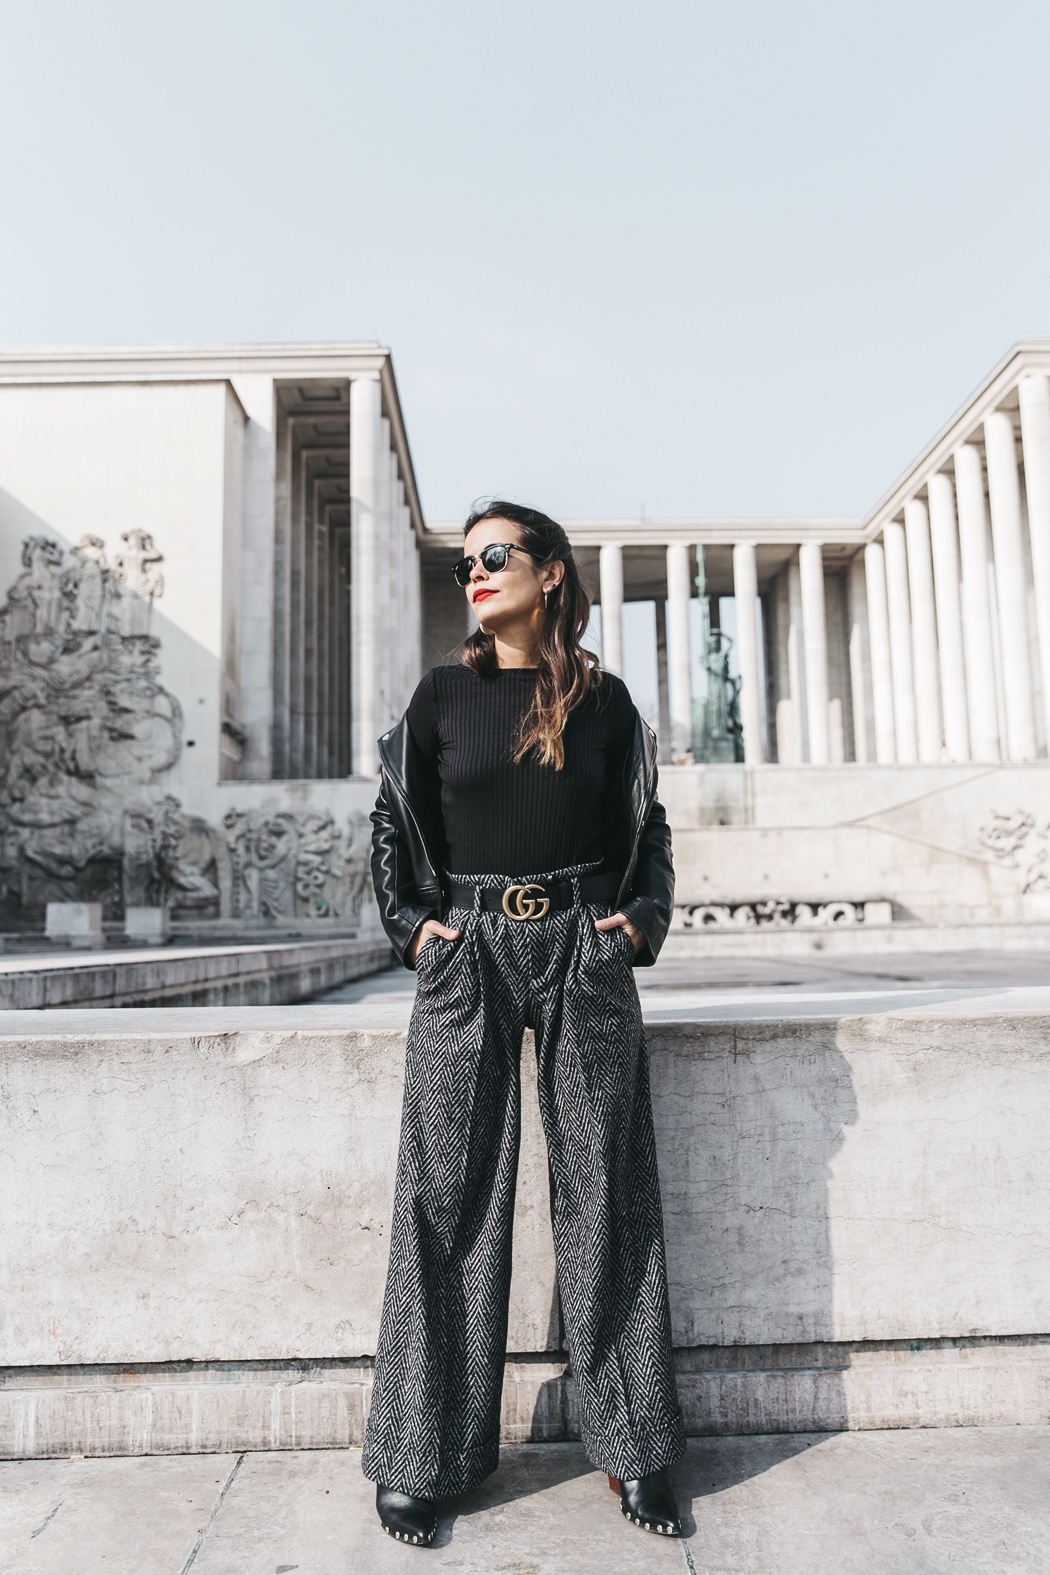 Black_Body-Leather_Jacket-Celine_boots-Gucci_Belt-Wide_Leg_Trousers-Street_Style-9